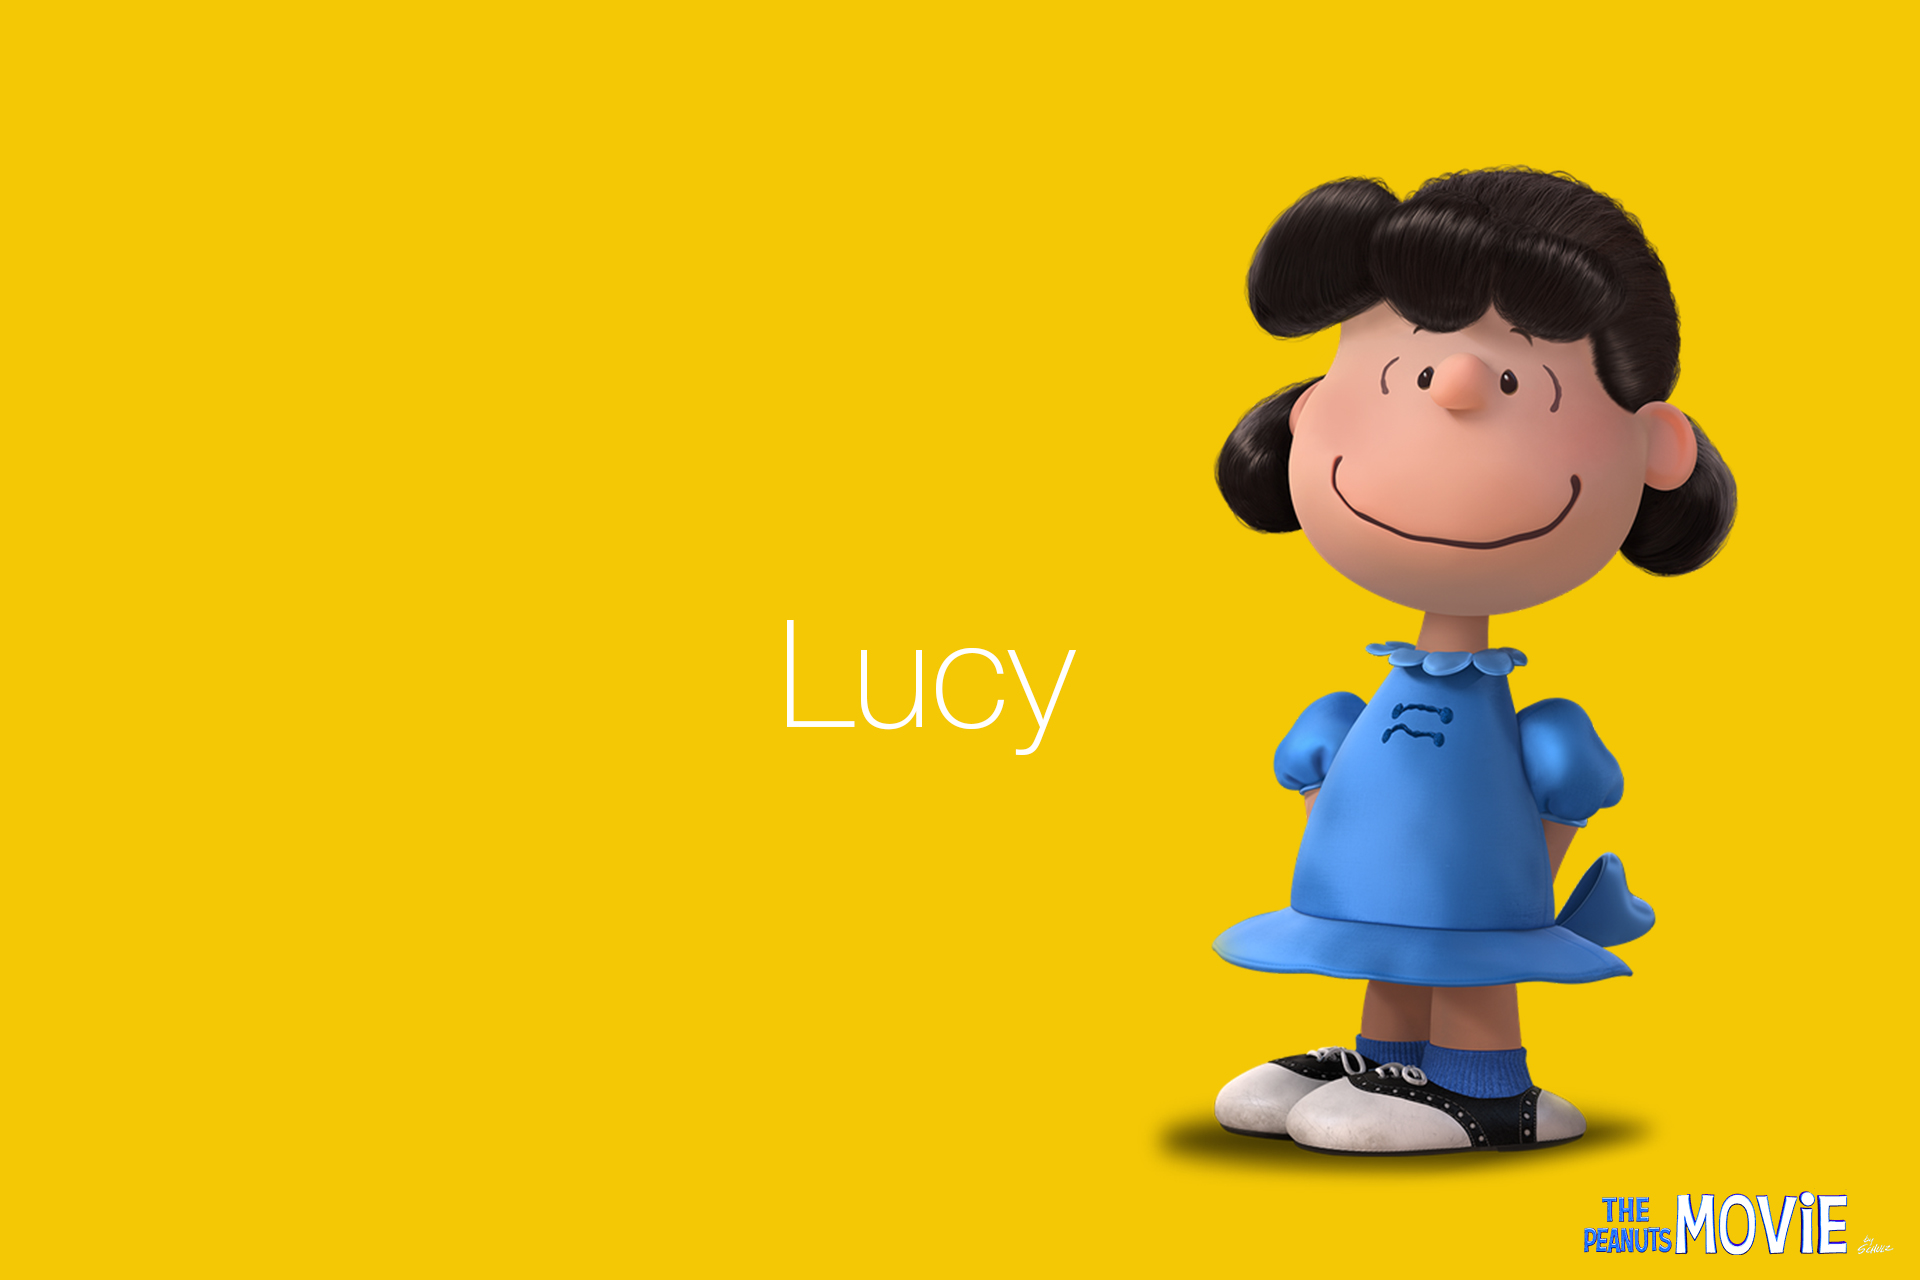 lucy peanuts 2015 related - photo #5